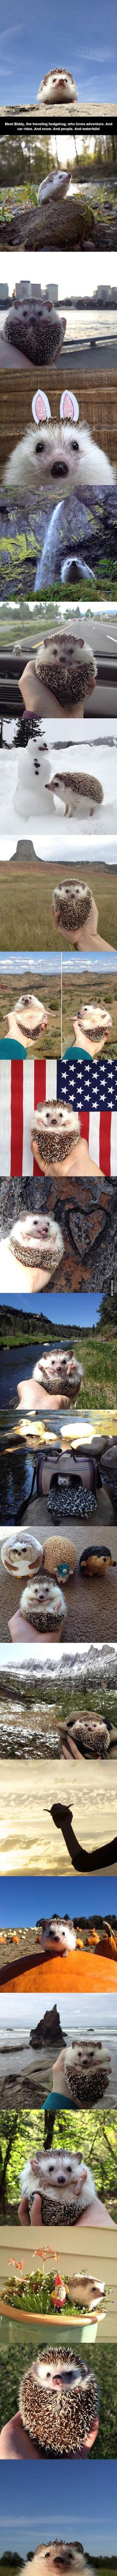 Adventures of Biddy The Hedgehog. So adorable! Gah! Why did my hedgehog have to be so damn grumpy?!